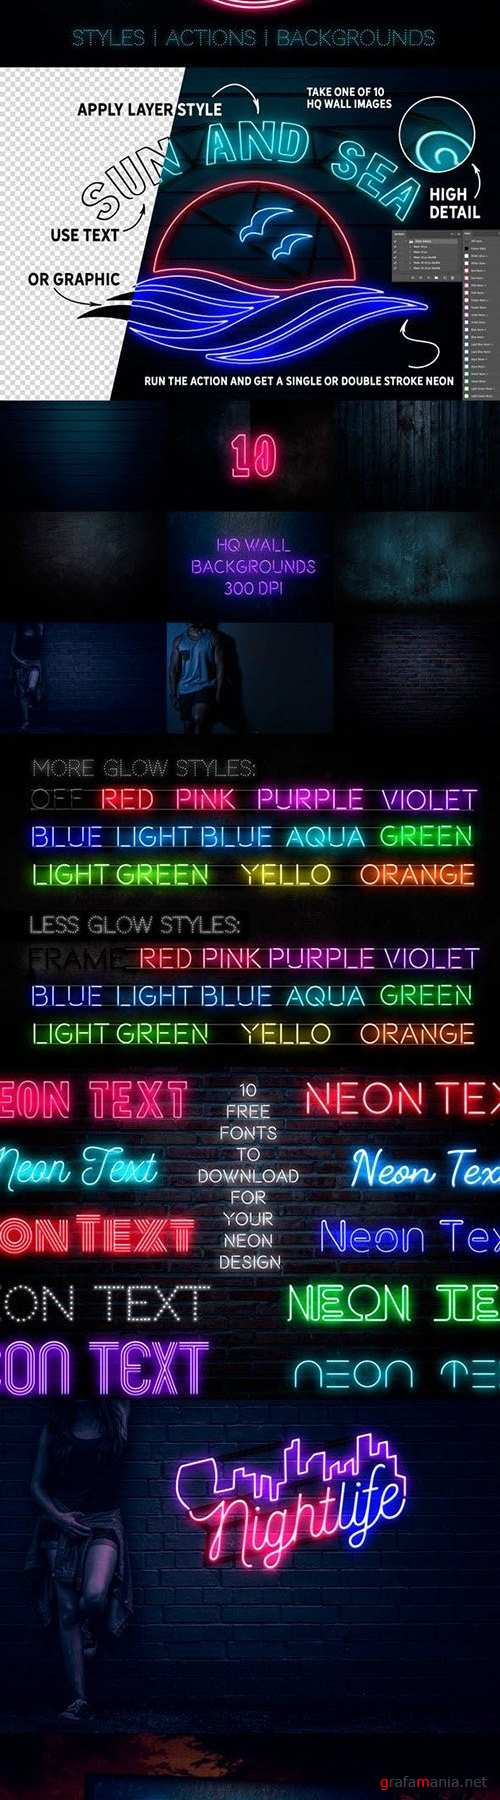 Neon Text Layer Styles & Extras 23426935